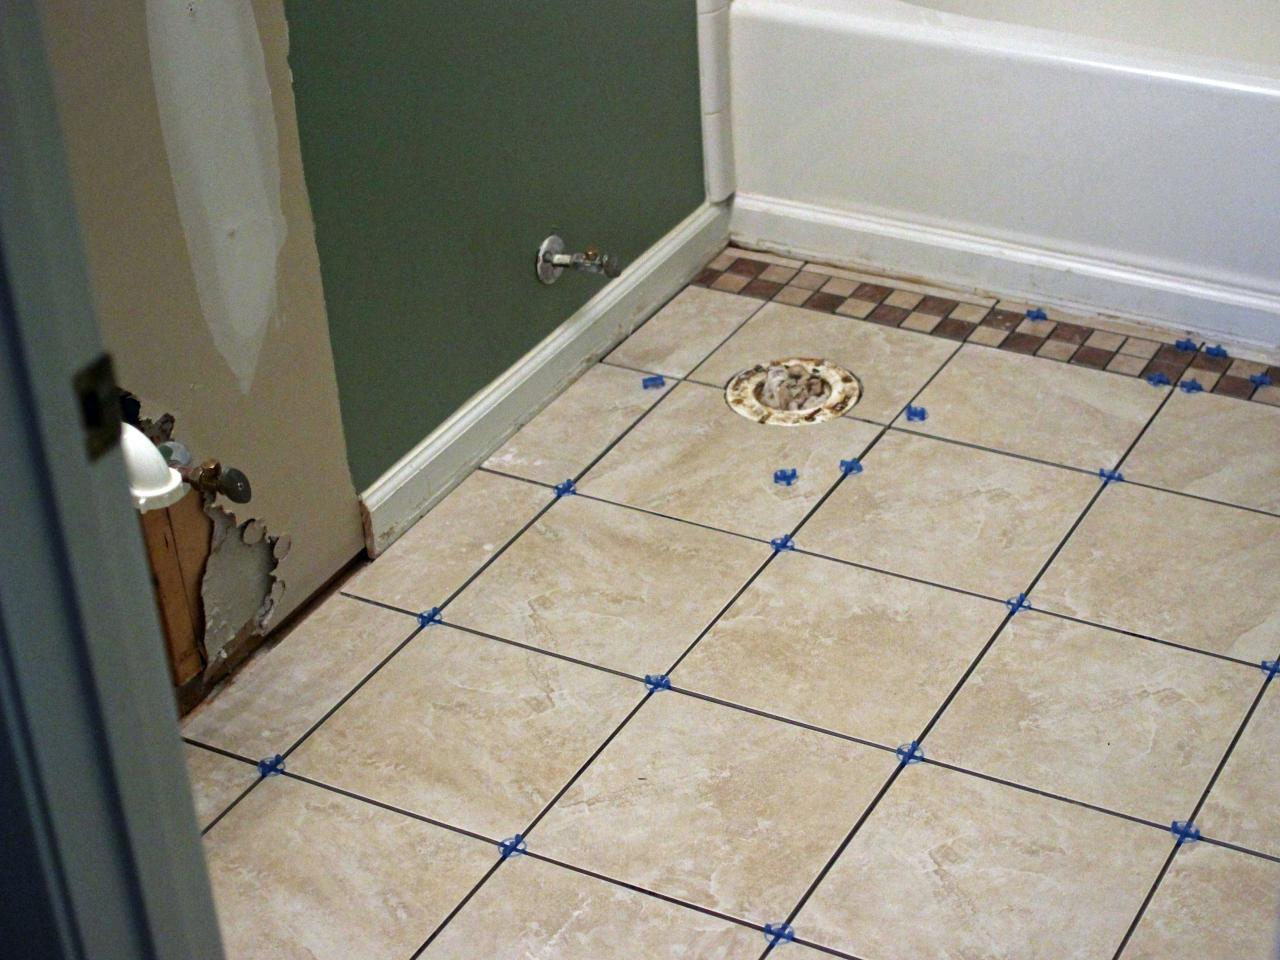 Fabulous How To Install Bathroom Floor Tile | How-Tos | Diy intended for Flooring For Bathrooms